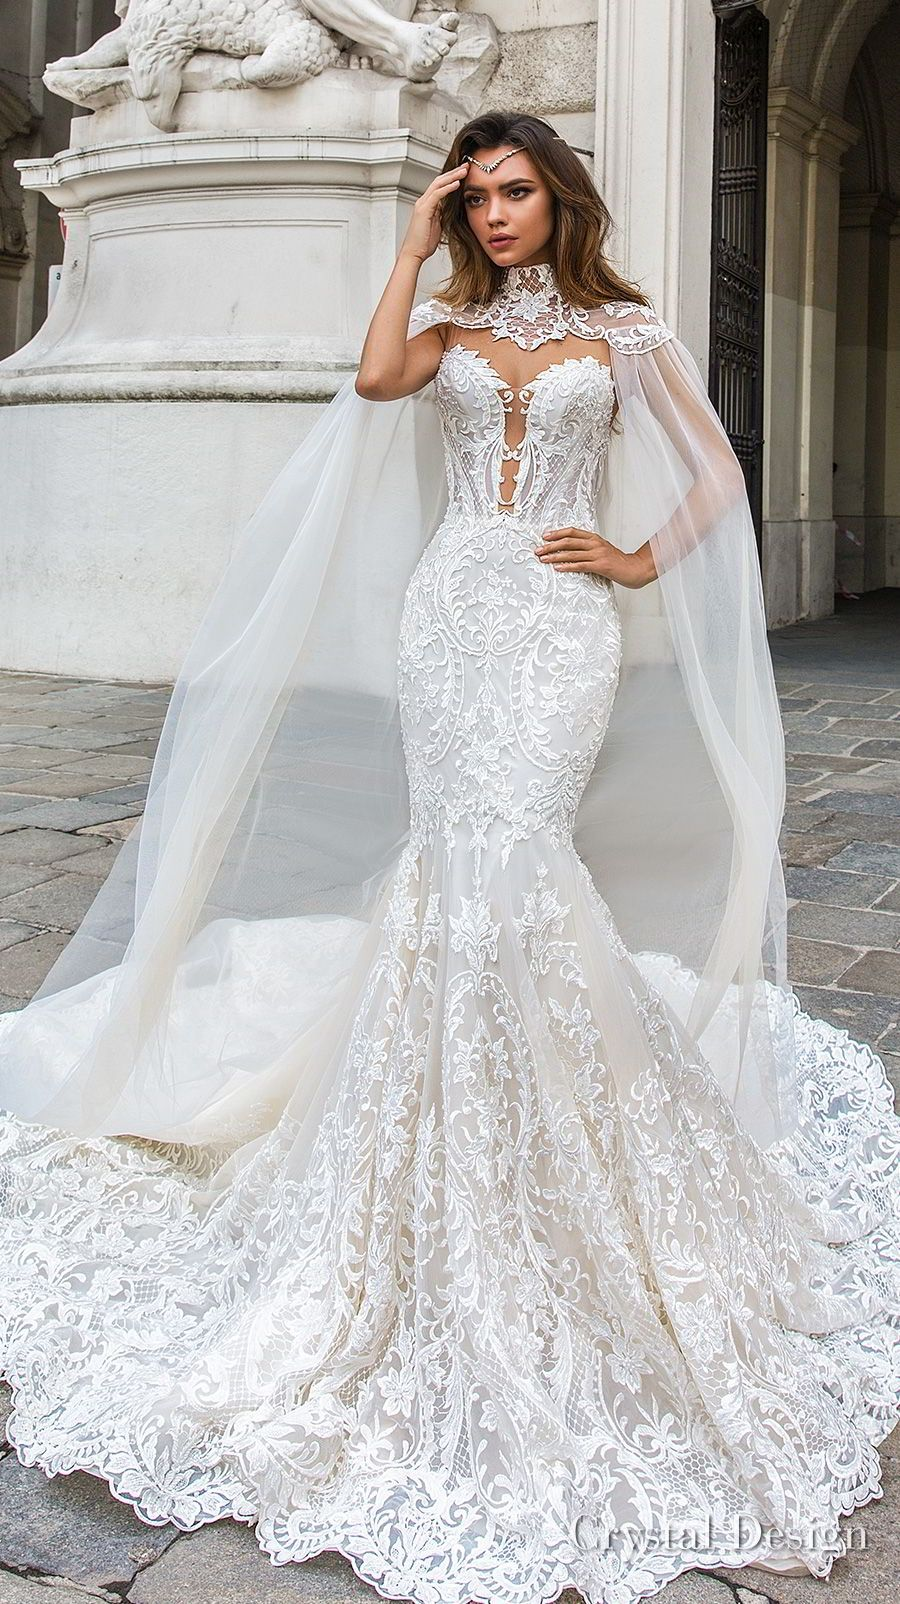 Most Expensive Wedding Gowns 2018 Crystal Design 2018 Wedding Dresses Royal Garden Haute Couture Sheer Wedding Dress Crystal Wedding Dresses Wedding Dresses